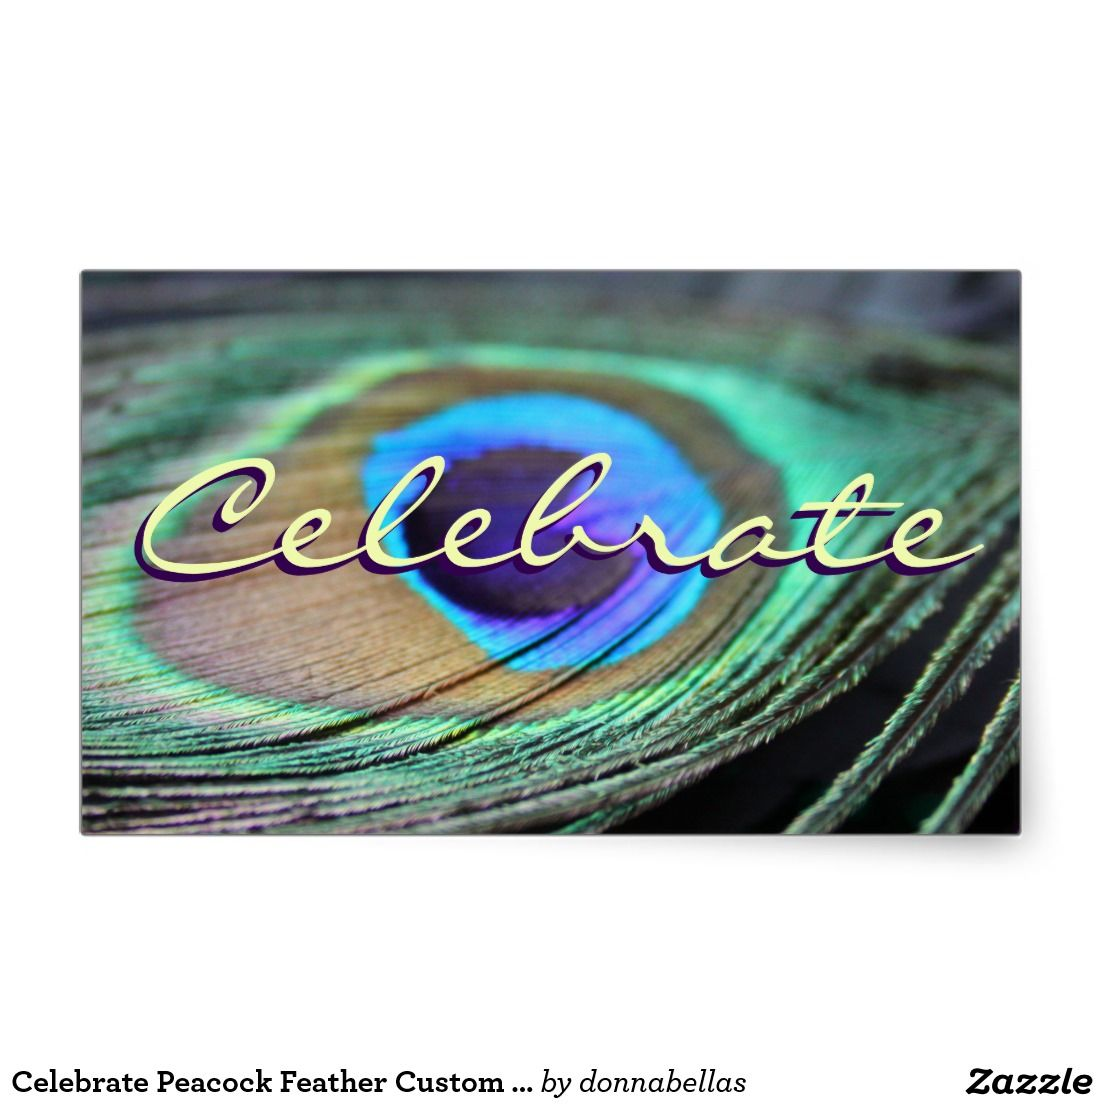 """Celebrate Peacock Feather Custom Rectangle Sticker - A festive photograph of the purple and turquoise eye of a bright peacock feather. The sticker seal message notes """"Celebrate"""" but the words can be personalized on the label seals. Make special celebration party favor gift label decals with your own text and images using the """"Customize It"""" option for personalized holidays and special life occasions holiday themed stickers art gifts!"""